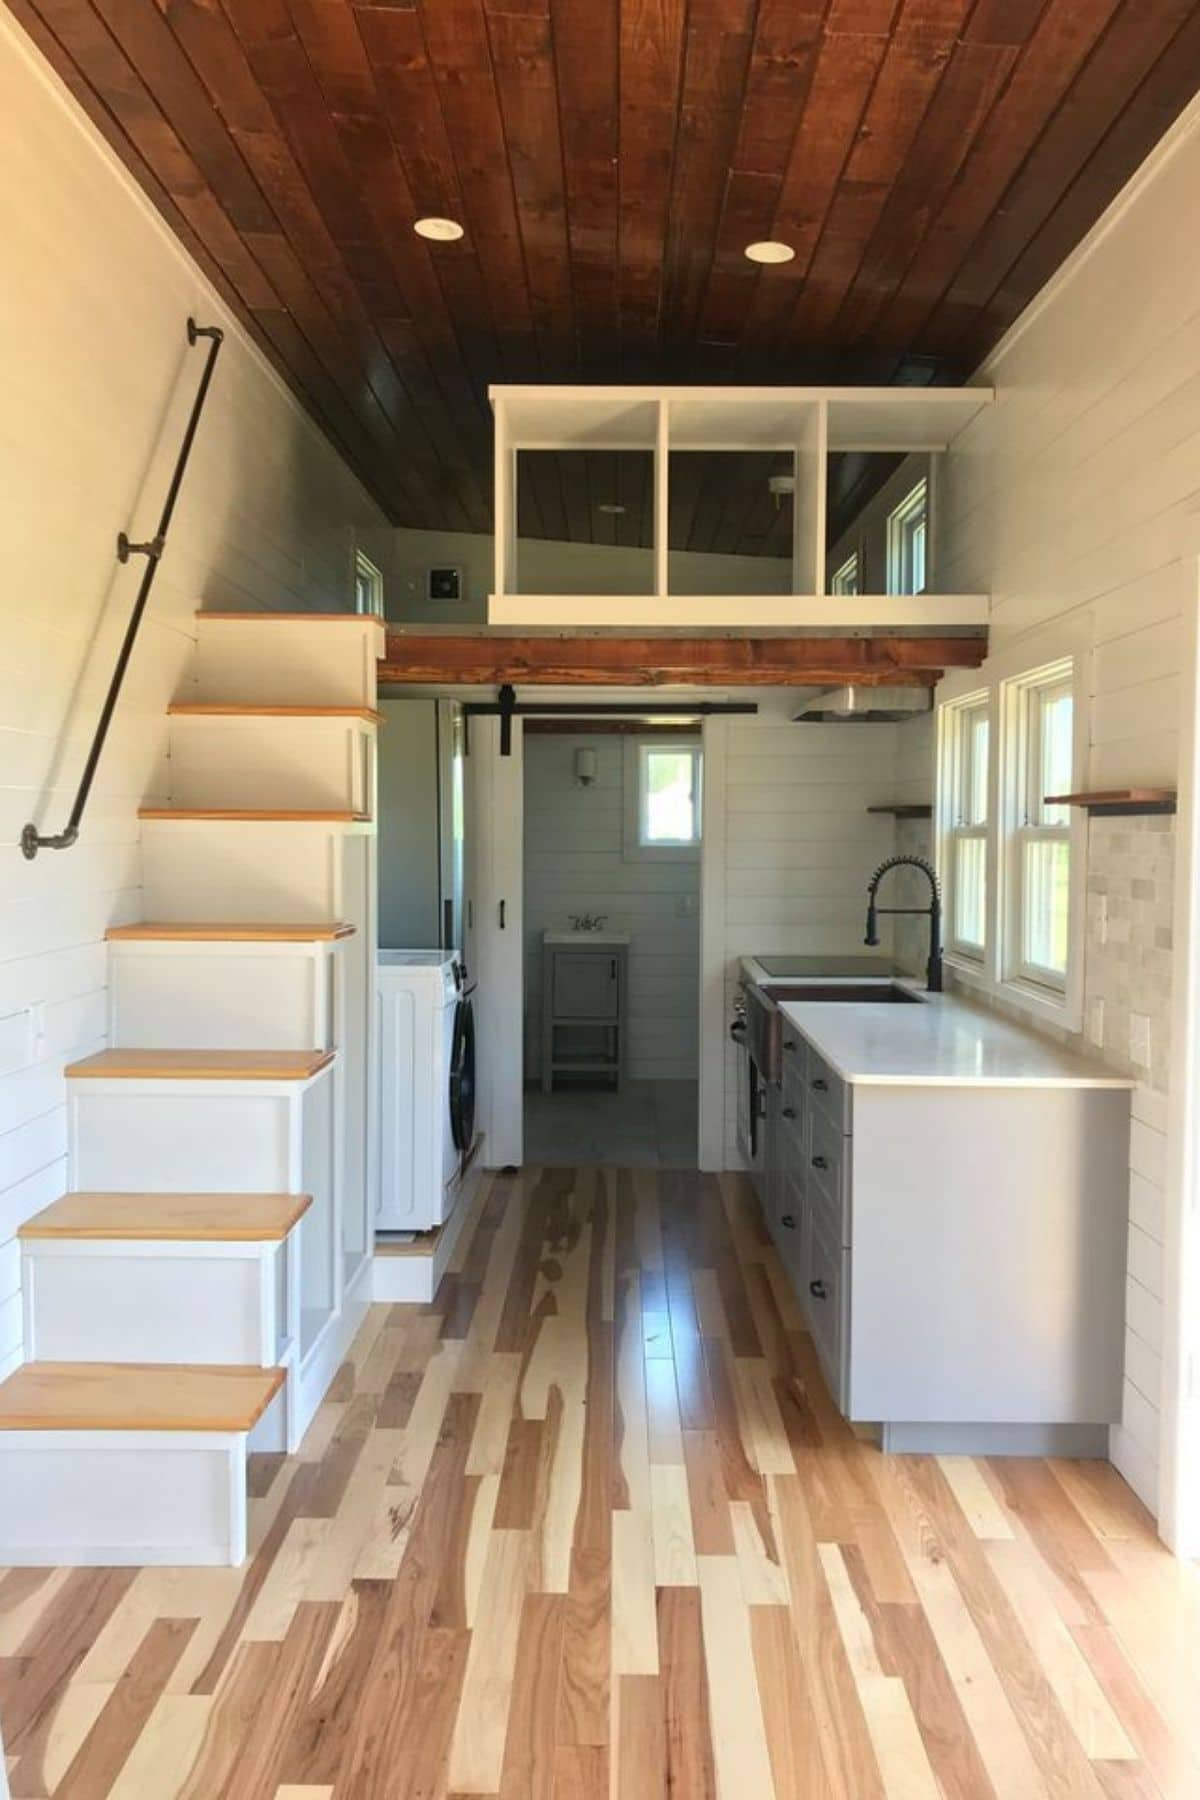 Tiny home living space with stairs on left and kitchen on right